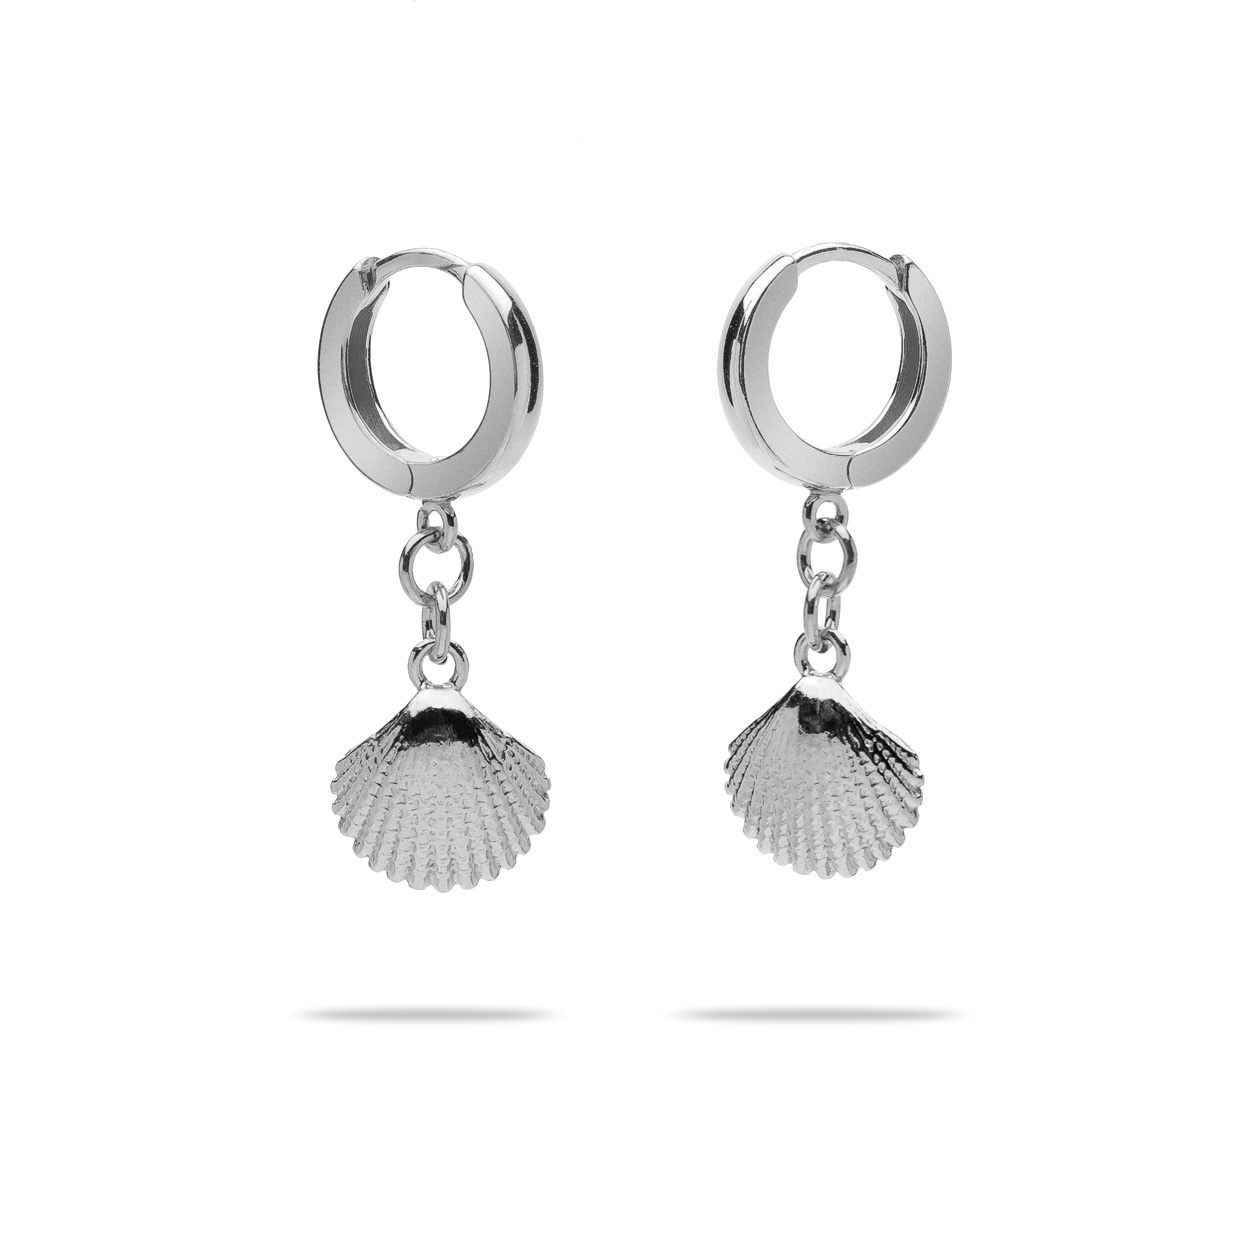 SHELL HOOP EARRINGS STERLING SILVER 925